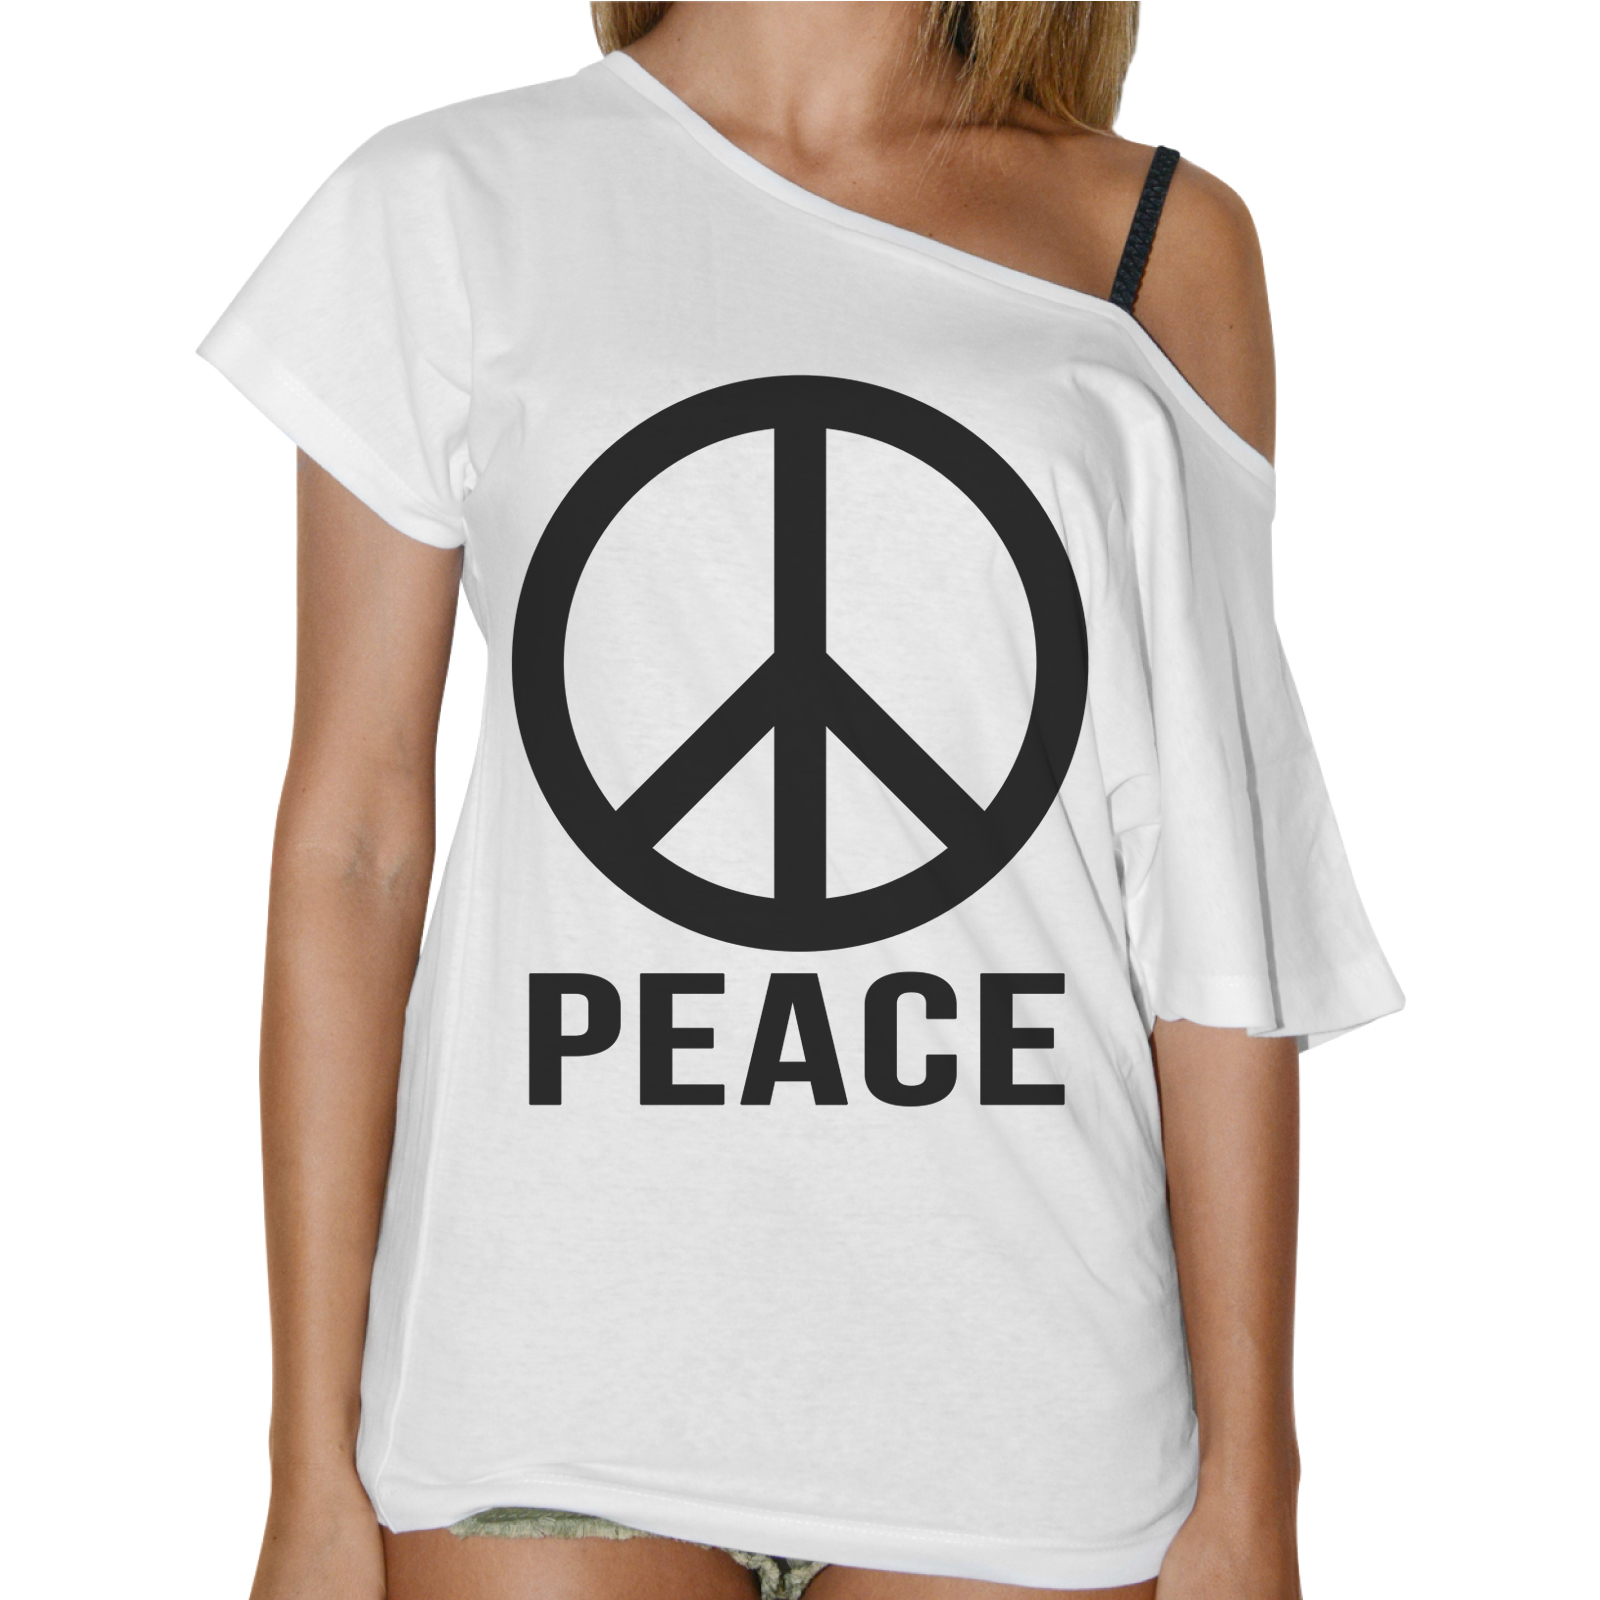 T-Shirt Donna Collo Barca PEACE